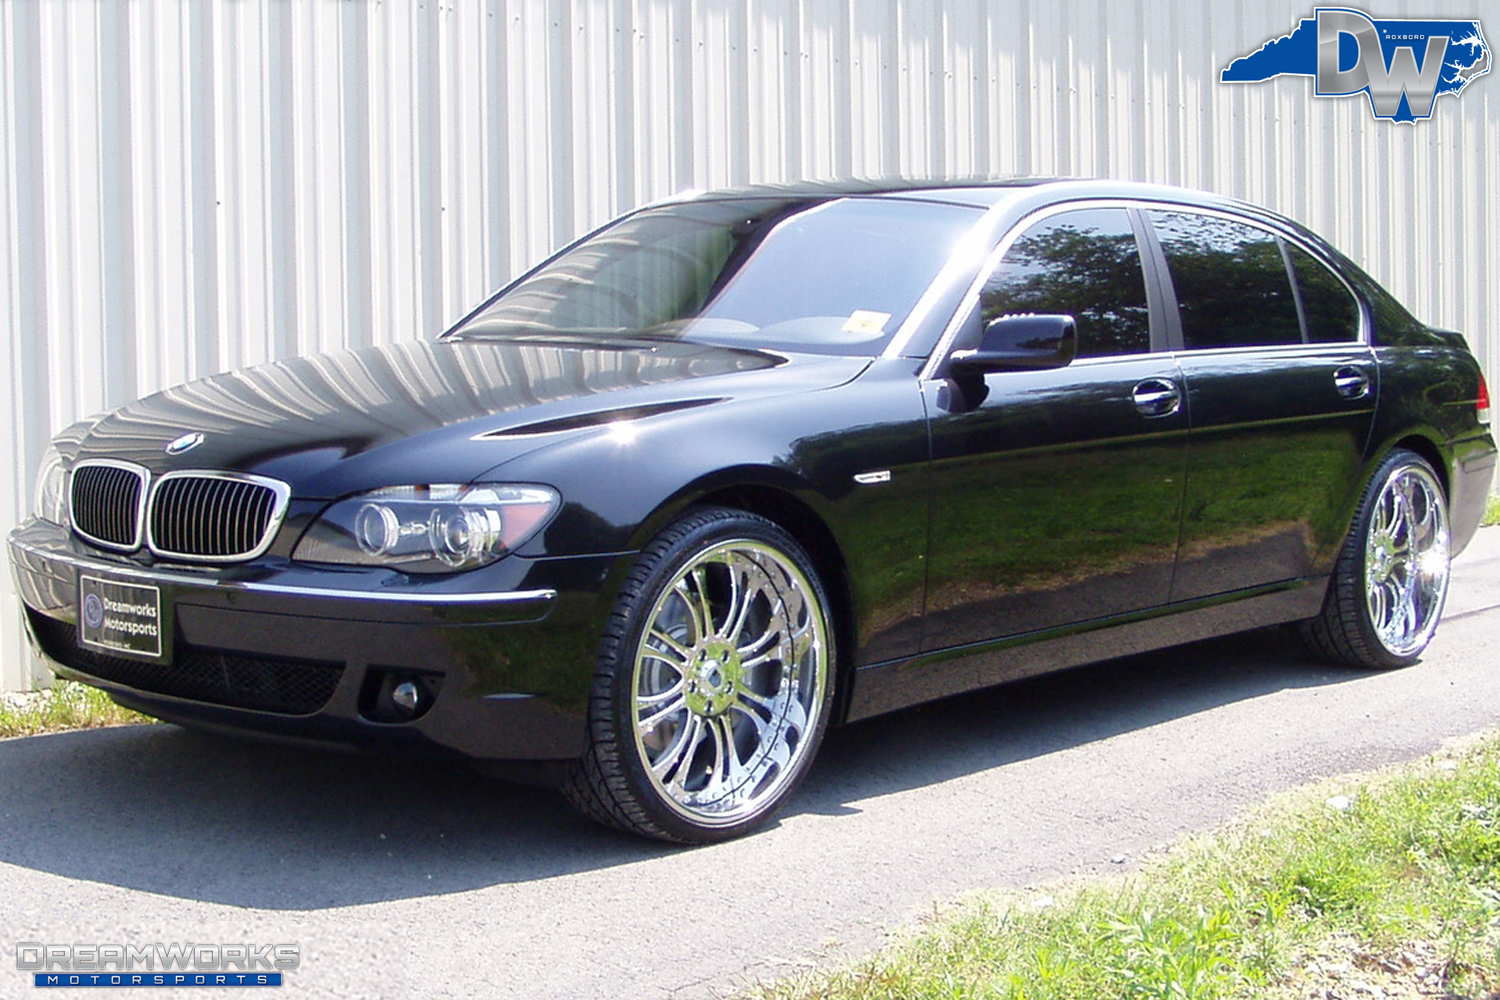 BMW-750Li-Chris-Paul-NBA-LA-Clippers-New-Orleans-Hornets-Houston-Rockets-Wake-Forest-Demon-Deacon-Dreamworks-Motorsports-1.jpg